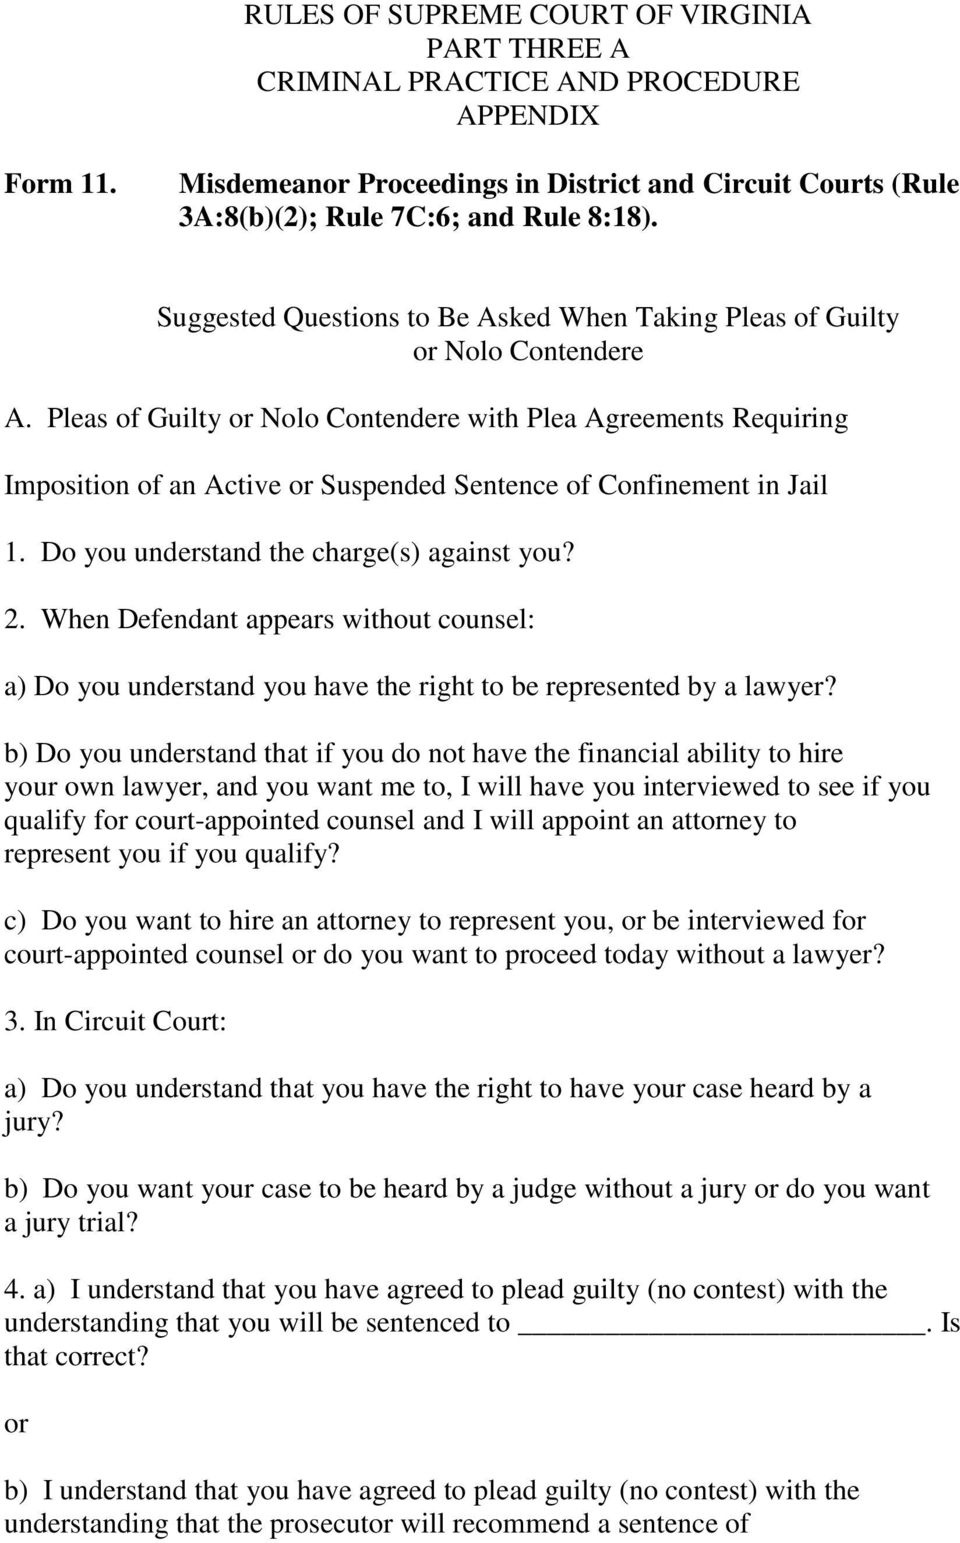 Pleas of Guilty or Nolo Contendere with Plea Agreements Requiring Imposition of an Active or Suspended Sentence of Confinement in Jail 1. Do you understand the charge(s) against you? 2.